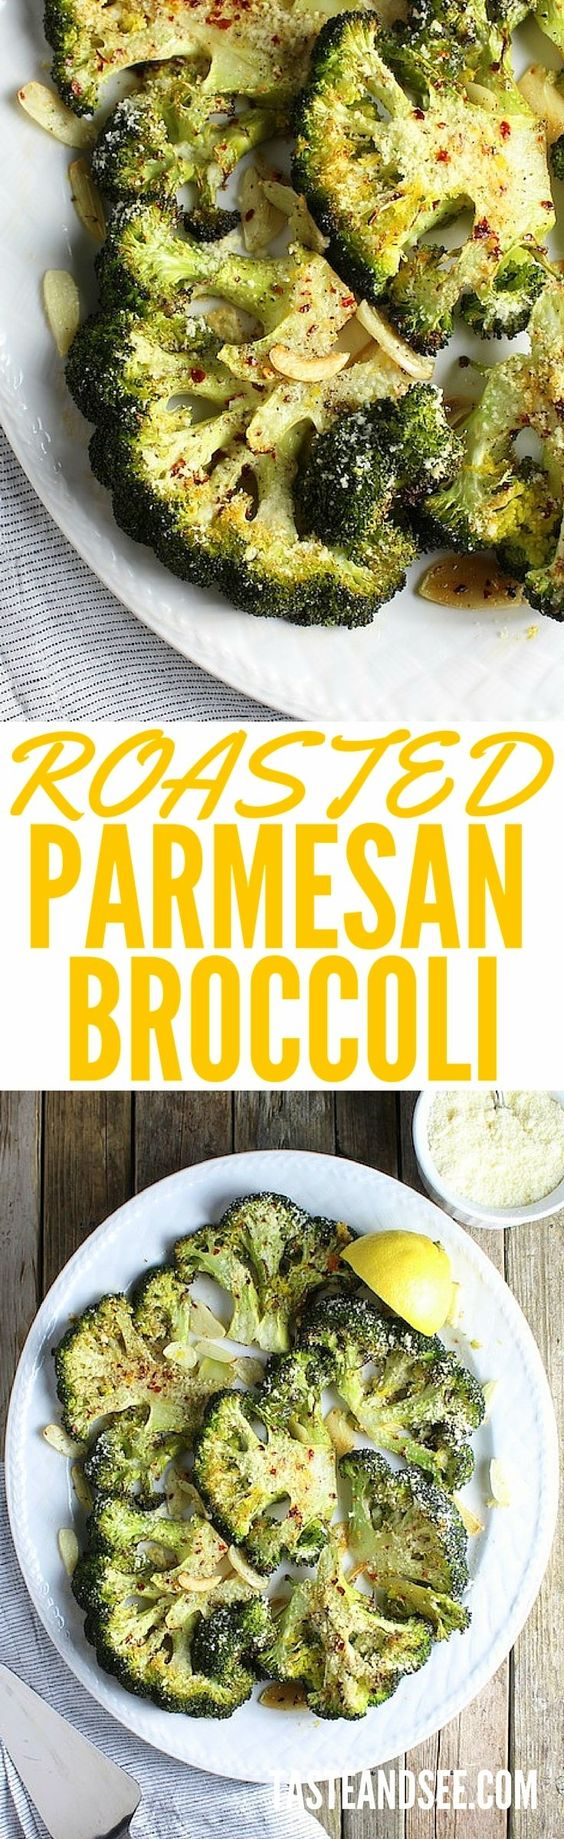 Roasted Parmesan Broccoli - Roasted with olive oil, Parmesan cheese, sliced garlic, and finished with lemon zest.  Super simple & healthy, this is a yummy, easy veggie dish.  http://tasteandsee.com: